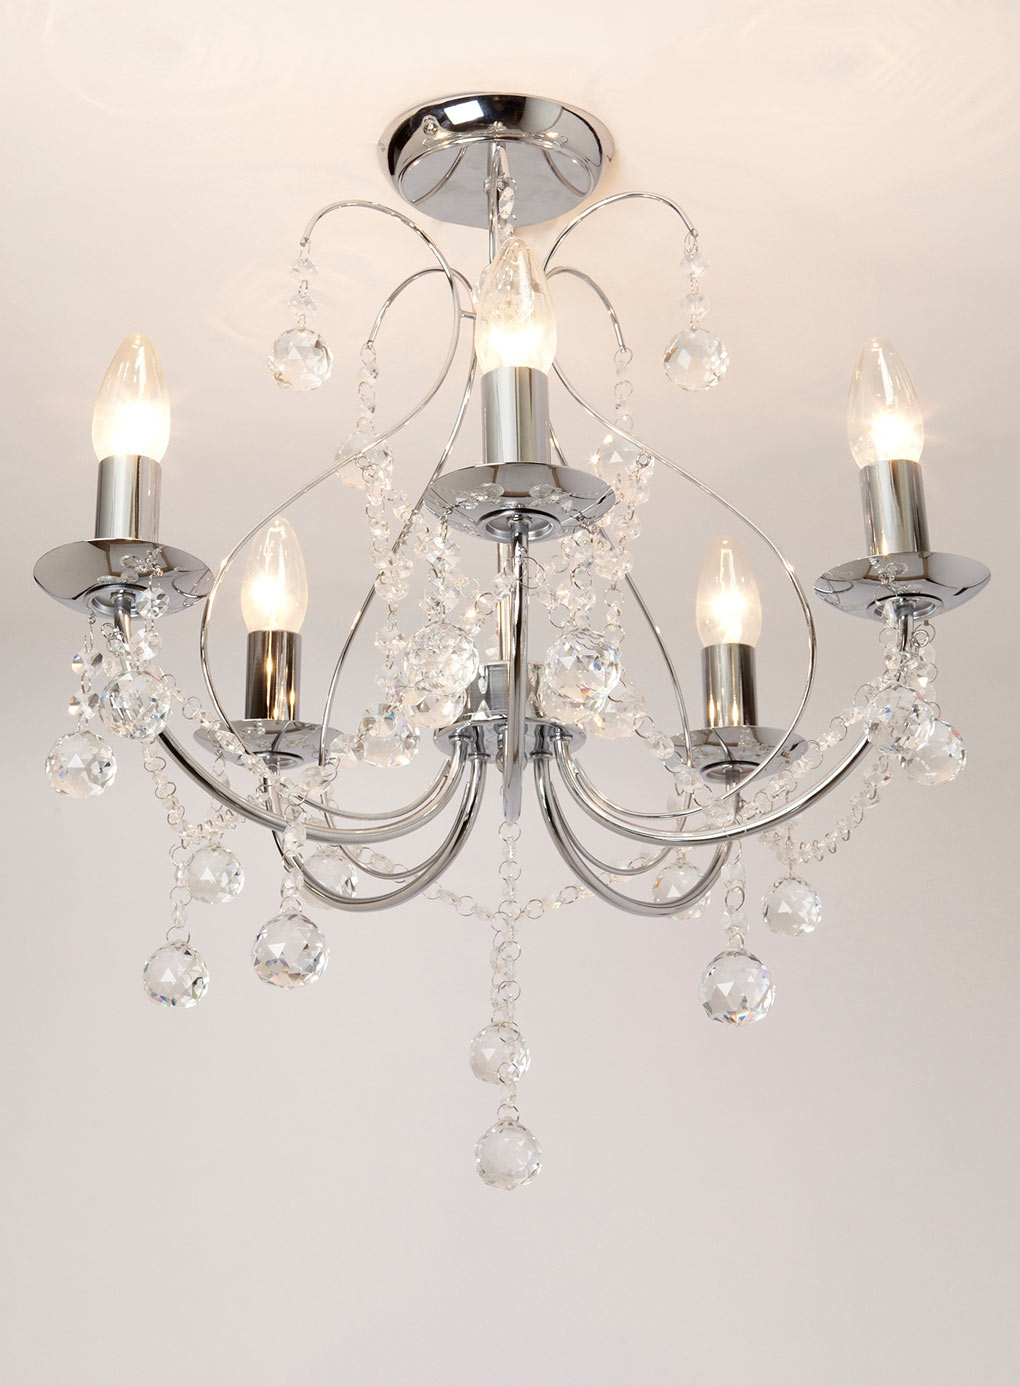 Fabulous Ceiling Lights And Chandeliers Jonas 1 Light Metal Intended For Light Fitting Chandeliers (Image 16 of 25)